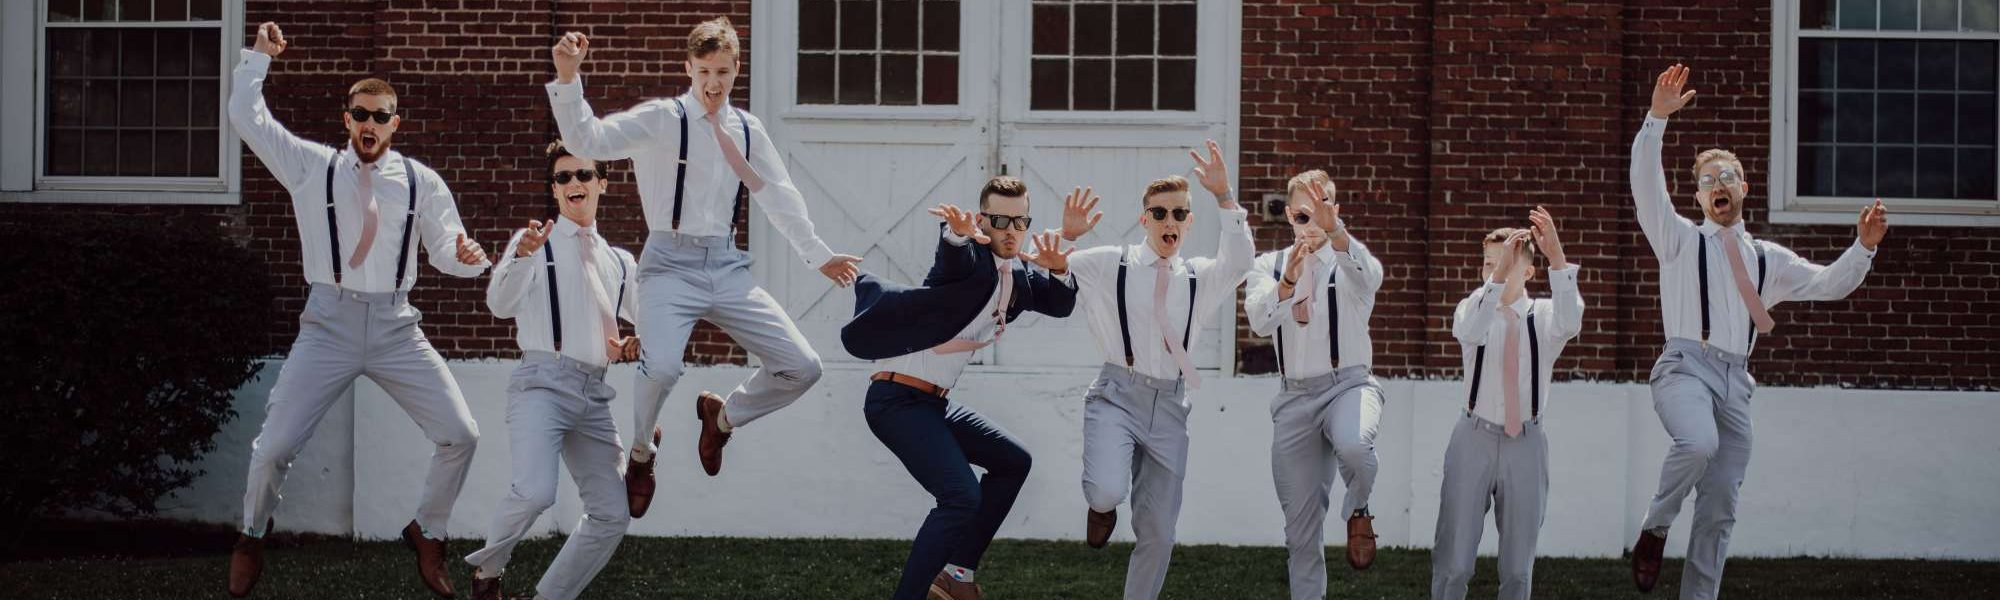 groom and groomsmen formal wear for wedding